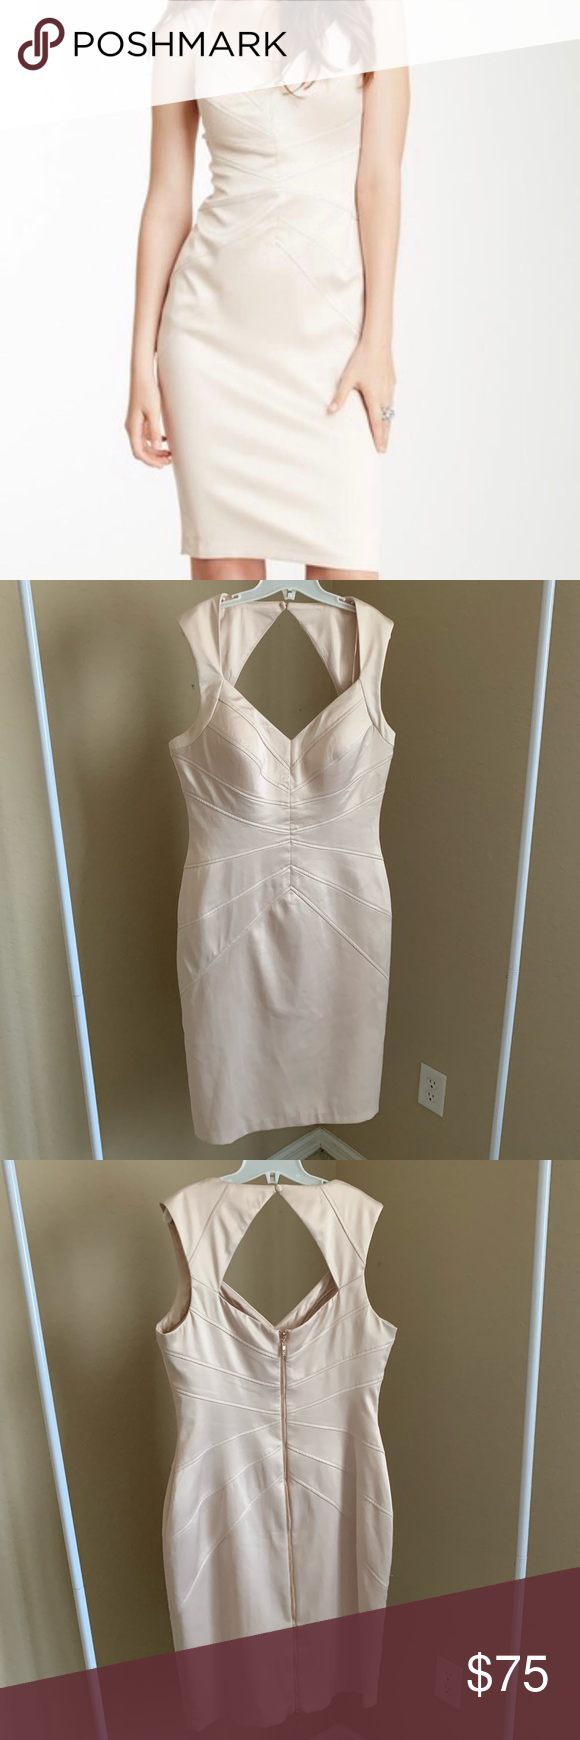 09edcc09712 Jessica Simpson midi champagne dress size 8 Jessica Simpson soft body con  champagne dress. Exposed